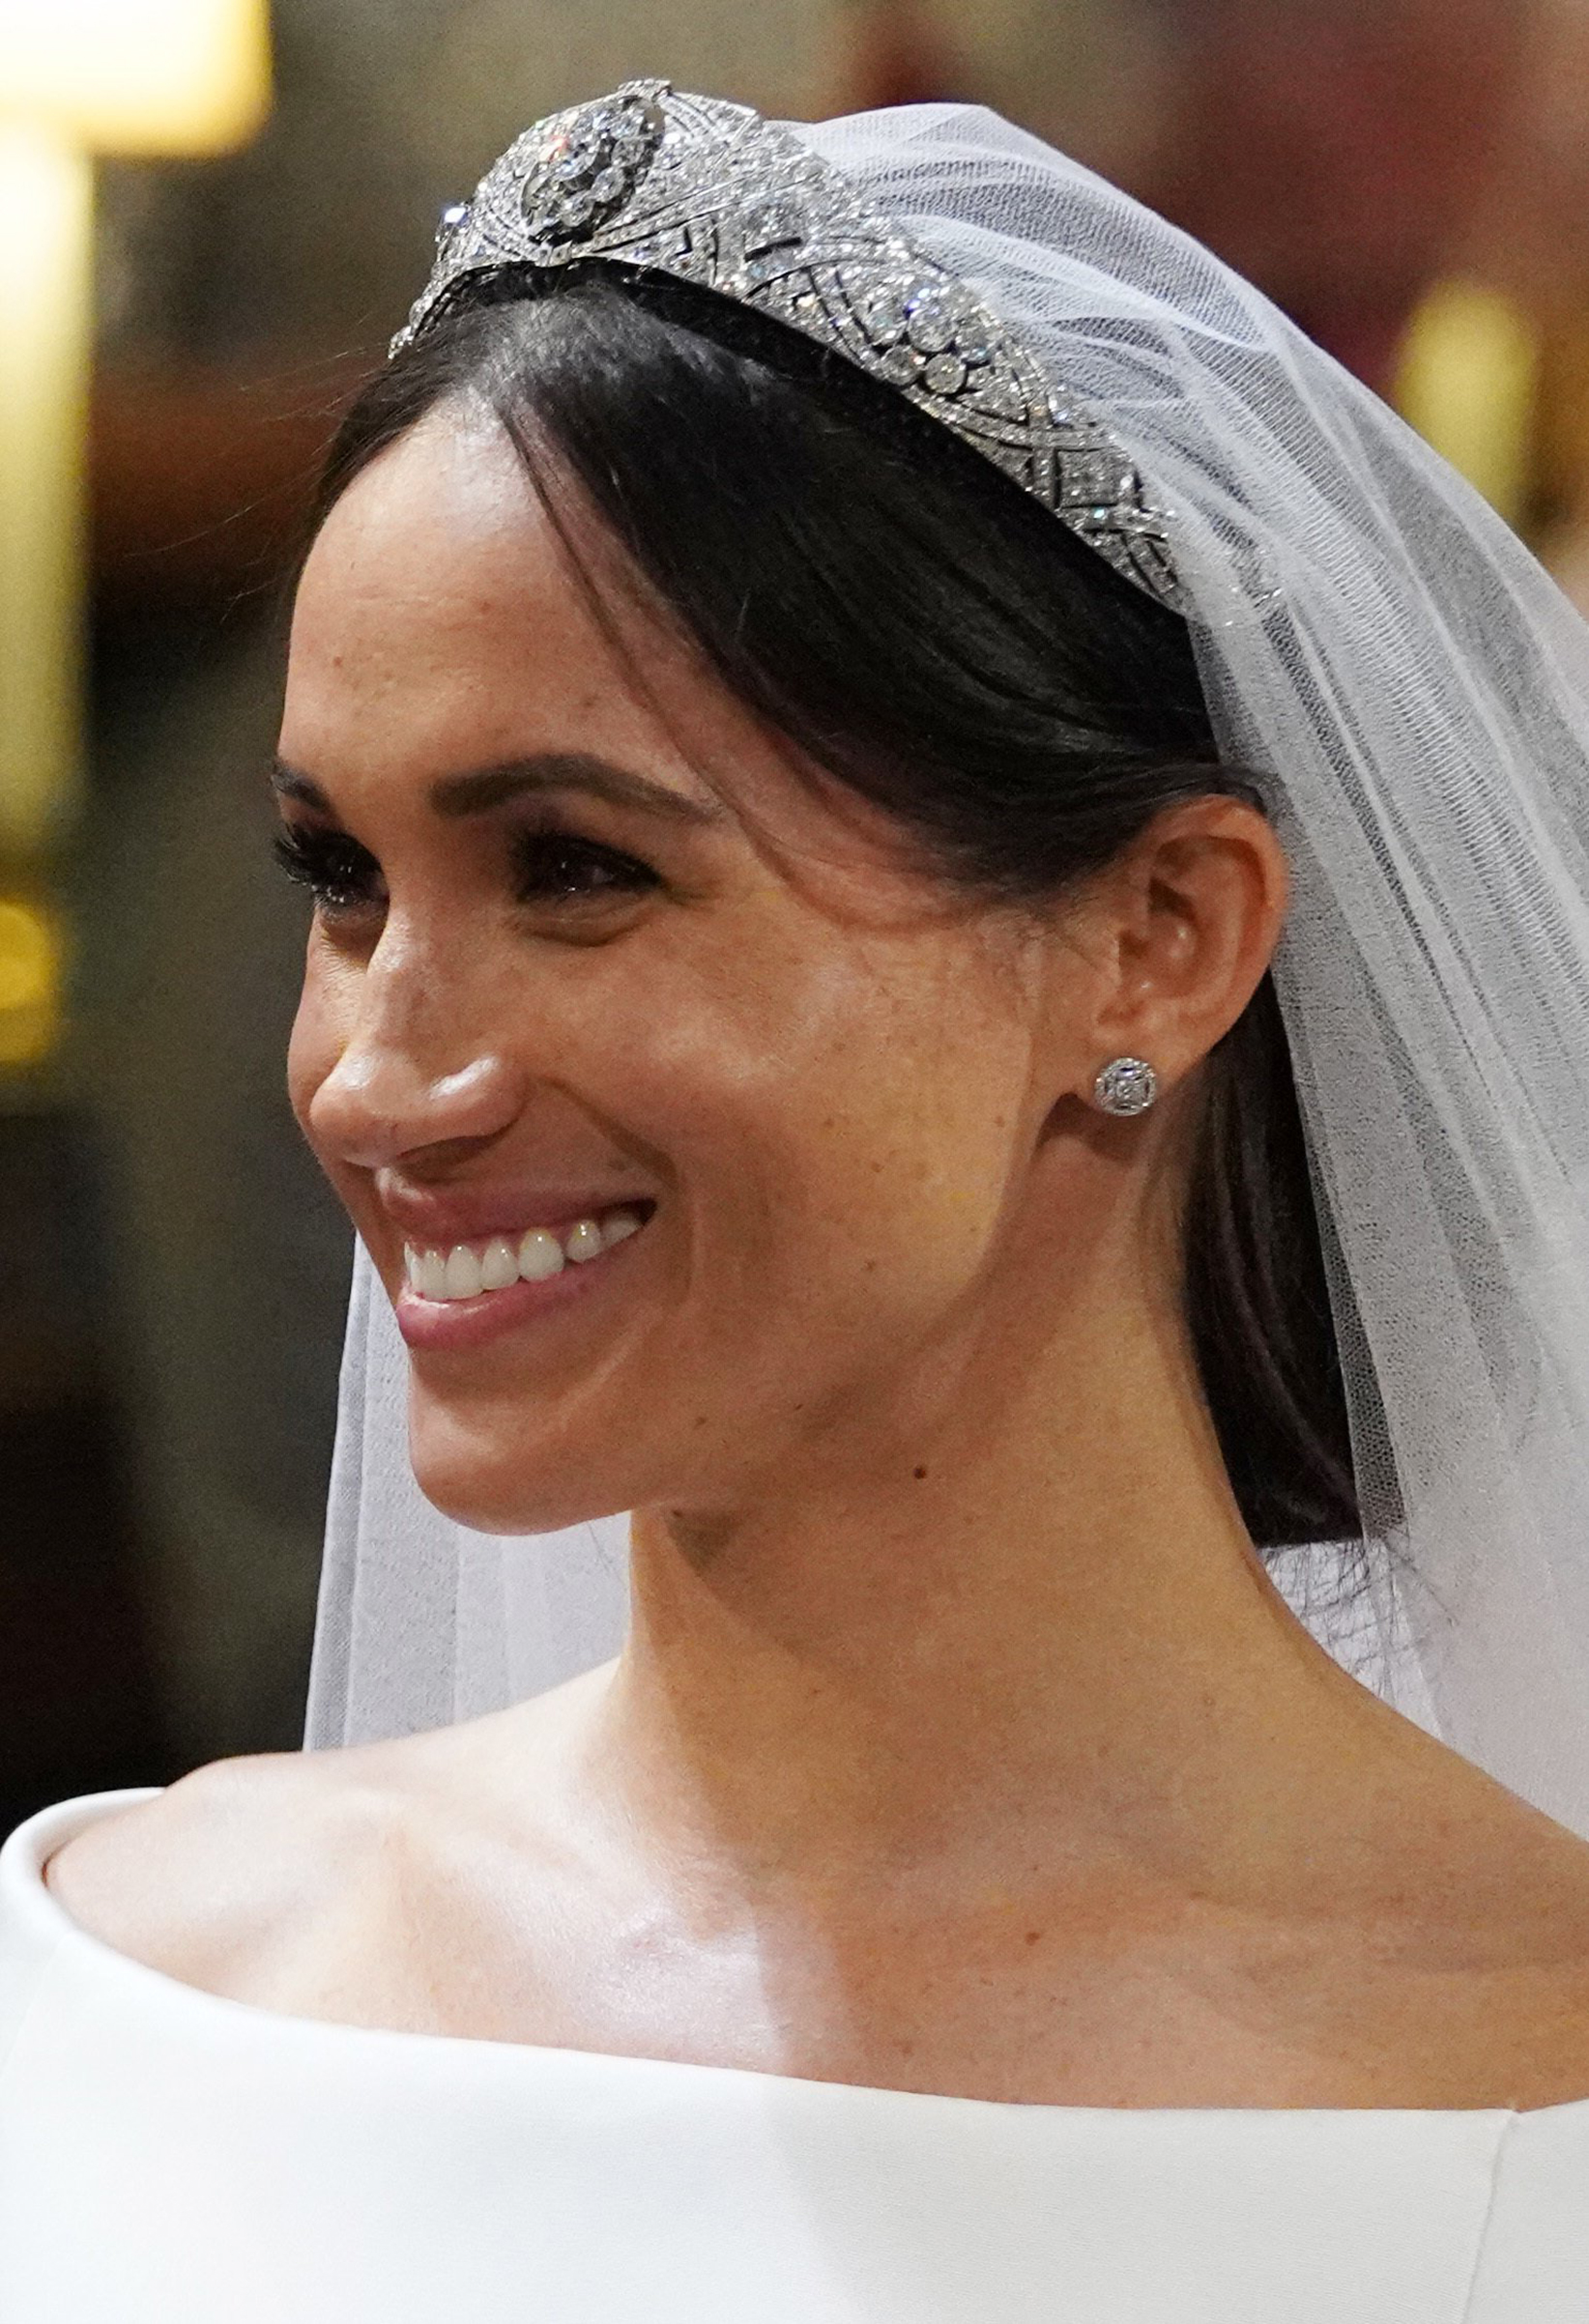 Meghan Markle in St George's Chapel at Windsor Castle during her wedding to Prince Harry, May 19, 2018.